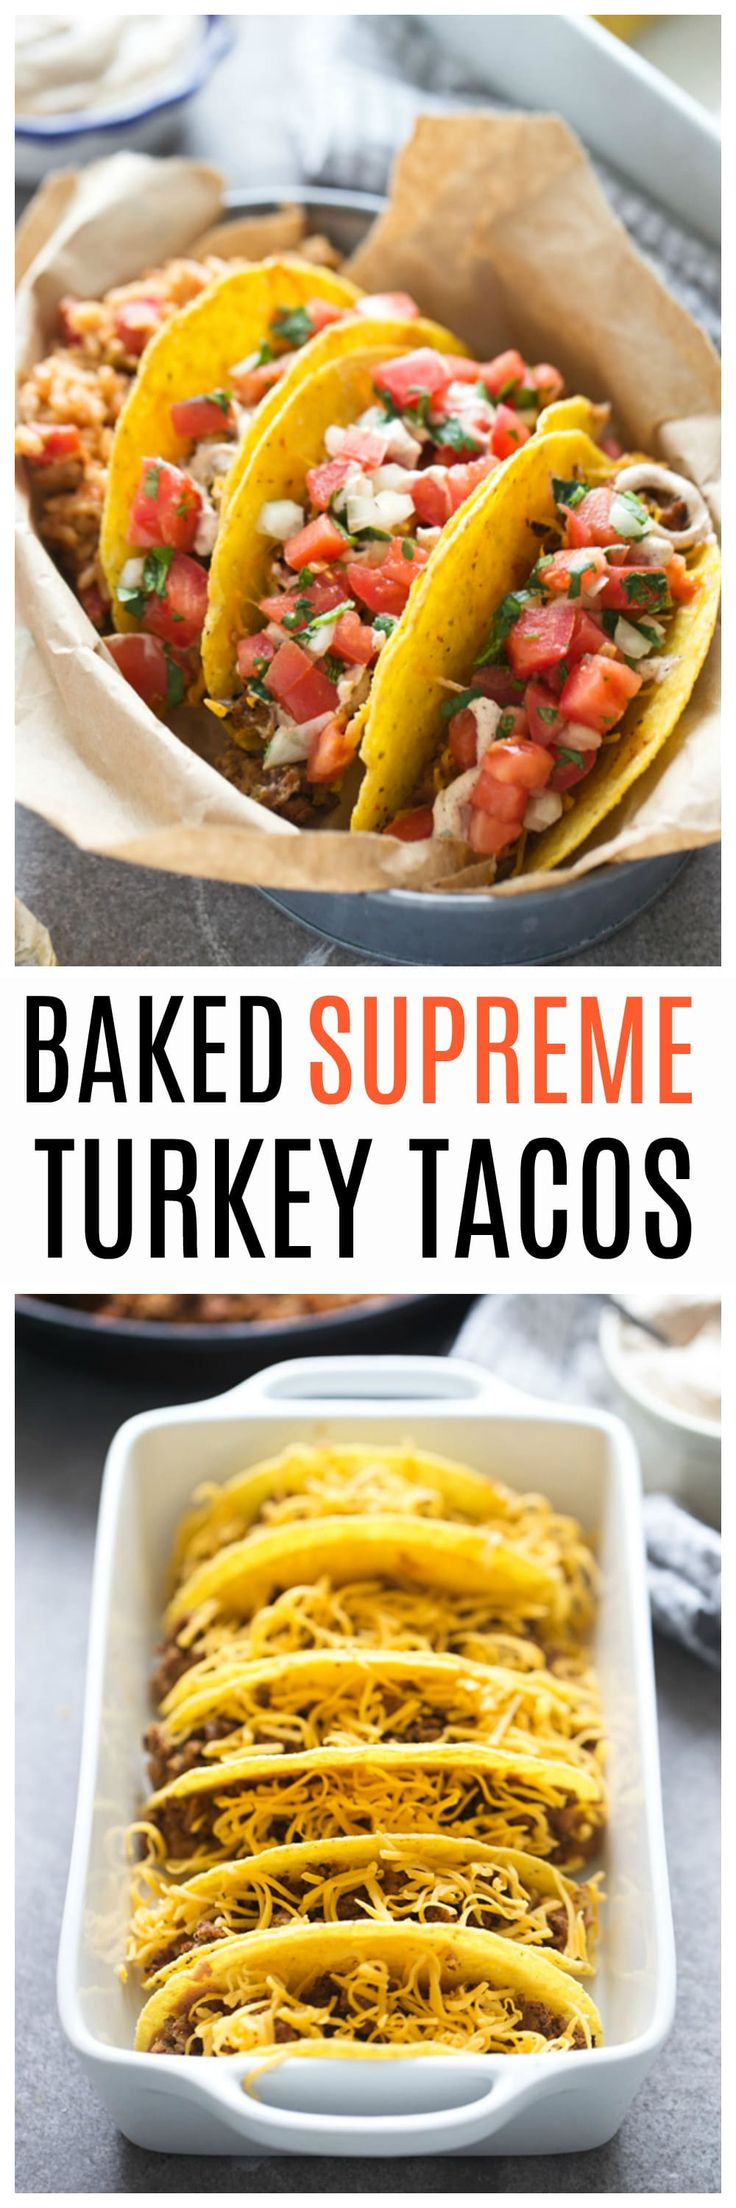 Baked Supreme Turkey Tacos: Loaded with fat-free refried beans, seasoned turkey meat, and melted cheese! Topped with Greek yogurt sauce and an easy pico.